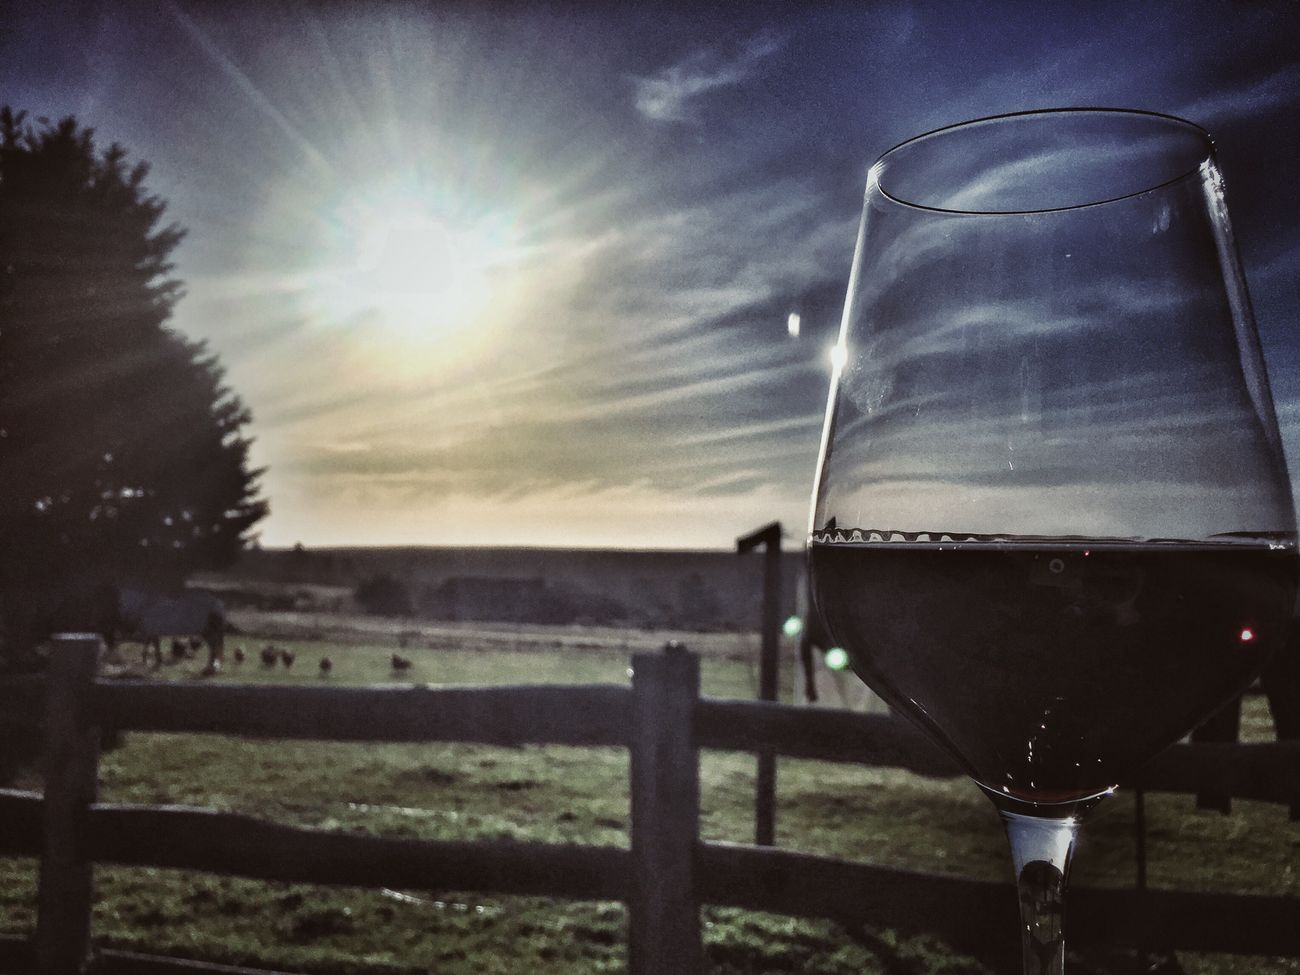 Red wine sunset Sky Refreshment Drink Outdoors Food And Drink Nature Close-up Alcohol EyeEm Best Edits Rural Scene Landscape Sunset #sun #clouds #skylovers #sky #nature #beautifulinnature #naturalbeauty #photography #landscape Wine Lovers Wineglass